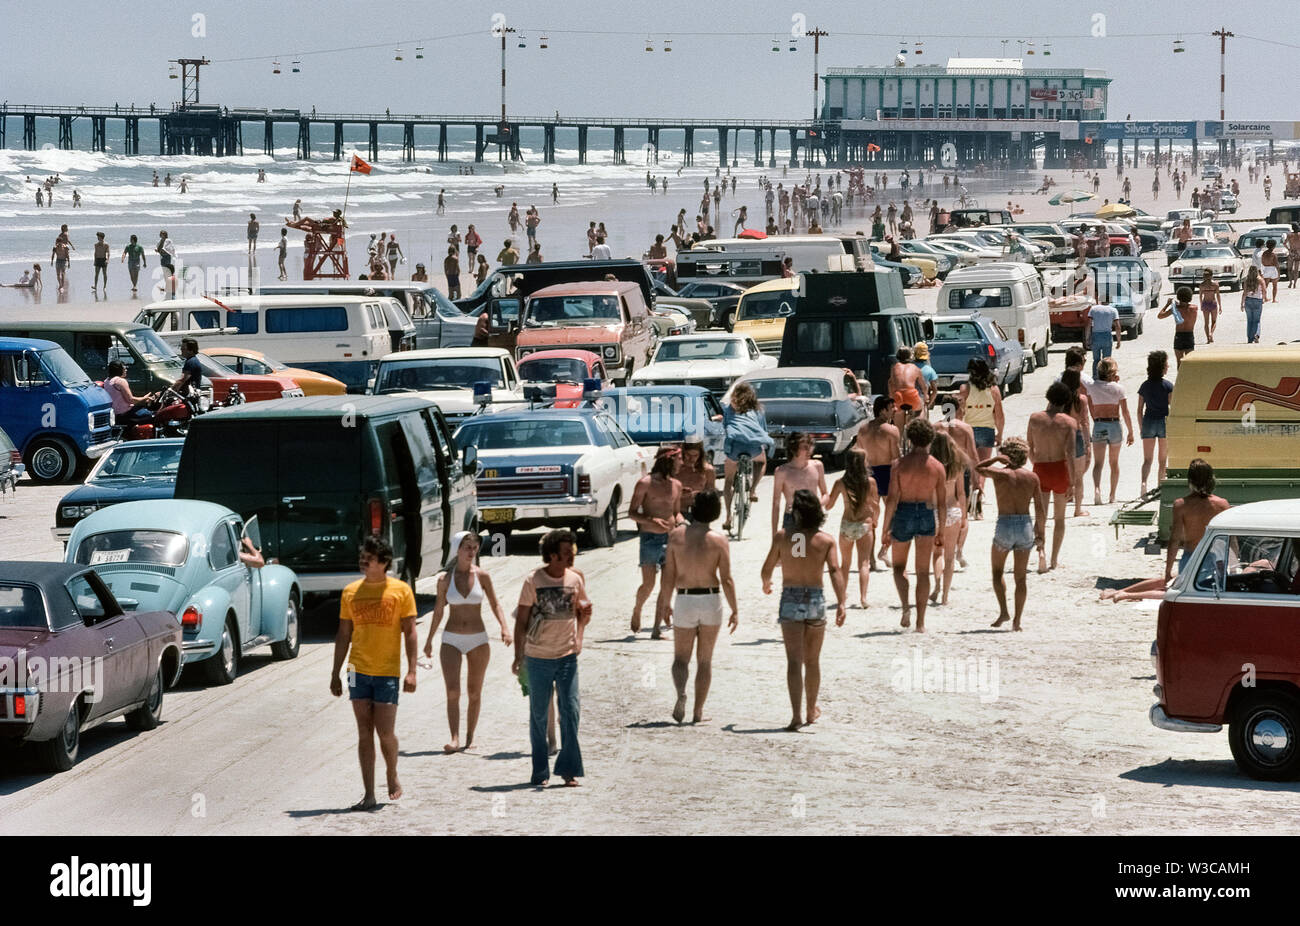 School holidays during Easter Week have long drawn crowds of teenagers to the beaches of Florida, USA, especially to places like Daytona Beach, photographed here in 1978, where motor vehicles can be driven and parked right on the hard-packed sand. Current rules now limit vehicles on the beach to specific areas between certain hours and a speed limit of 10 miles (16 kilometers) per hour. Also, there are traffic-free zones to protect sunbathing beachgoers from the cruising cars. When the tide is out, Daytona's 23-mile-long (37 kilometer) beach has plenty of room for a leisurely drive. - Stock Image